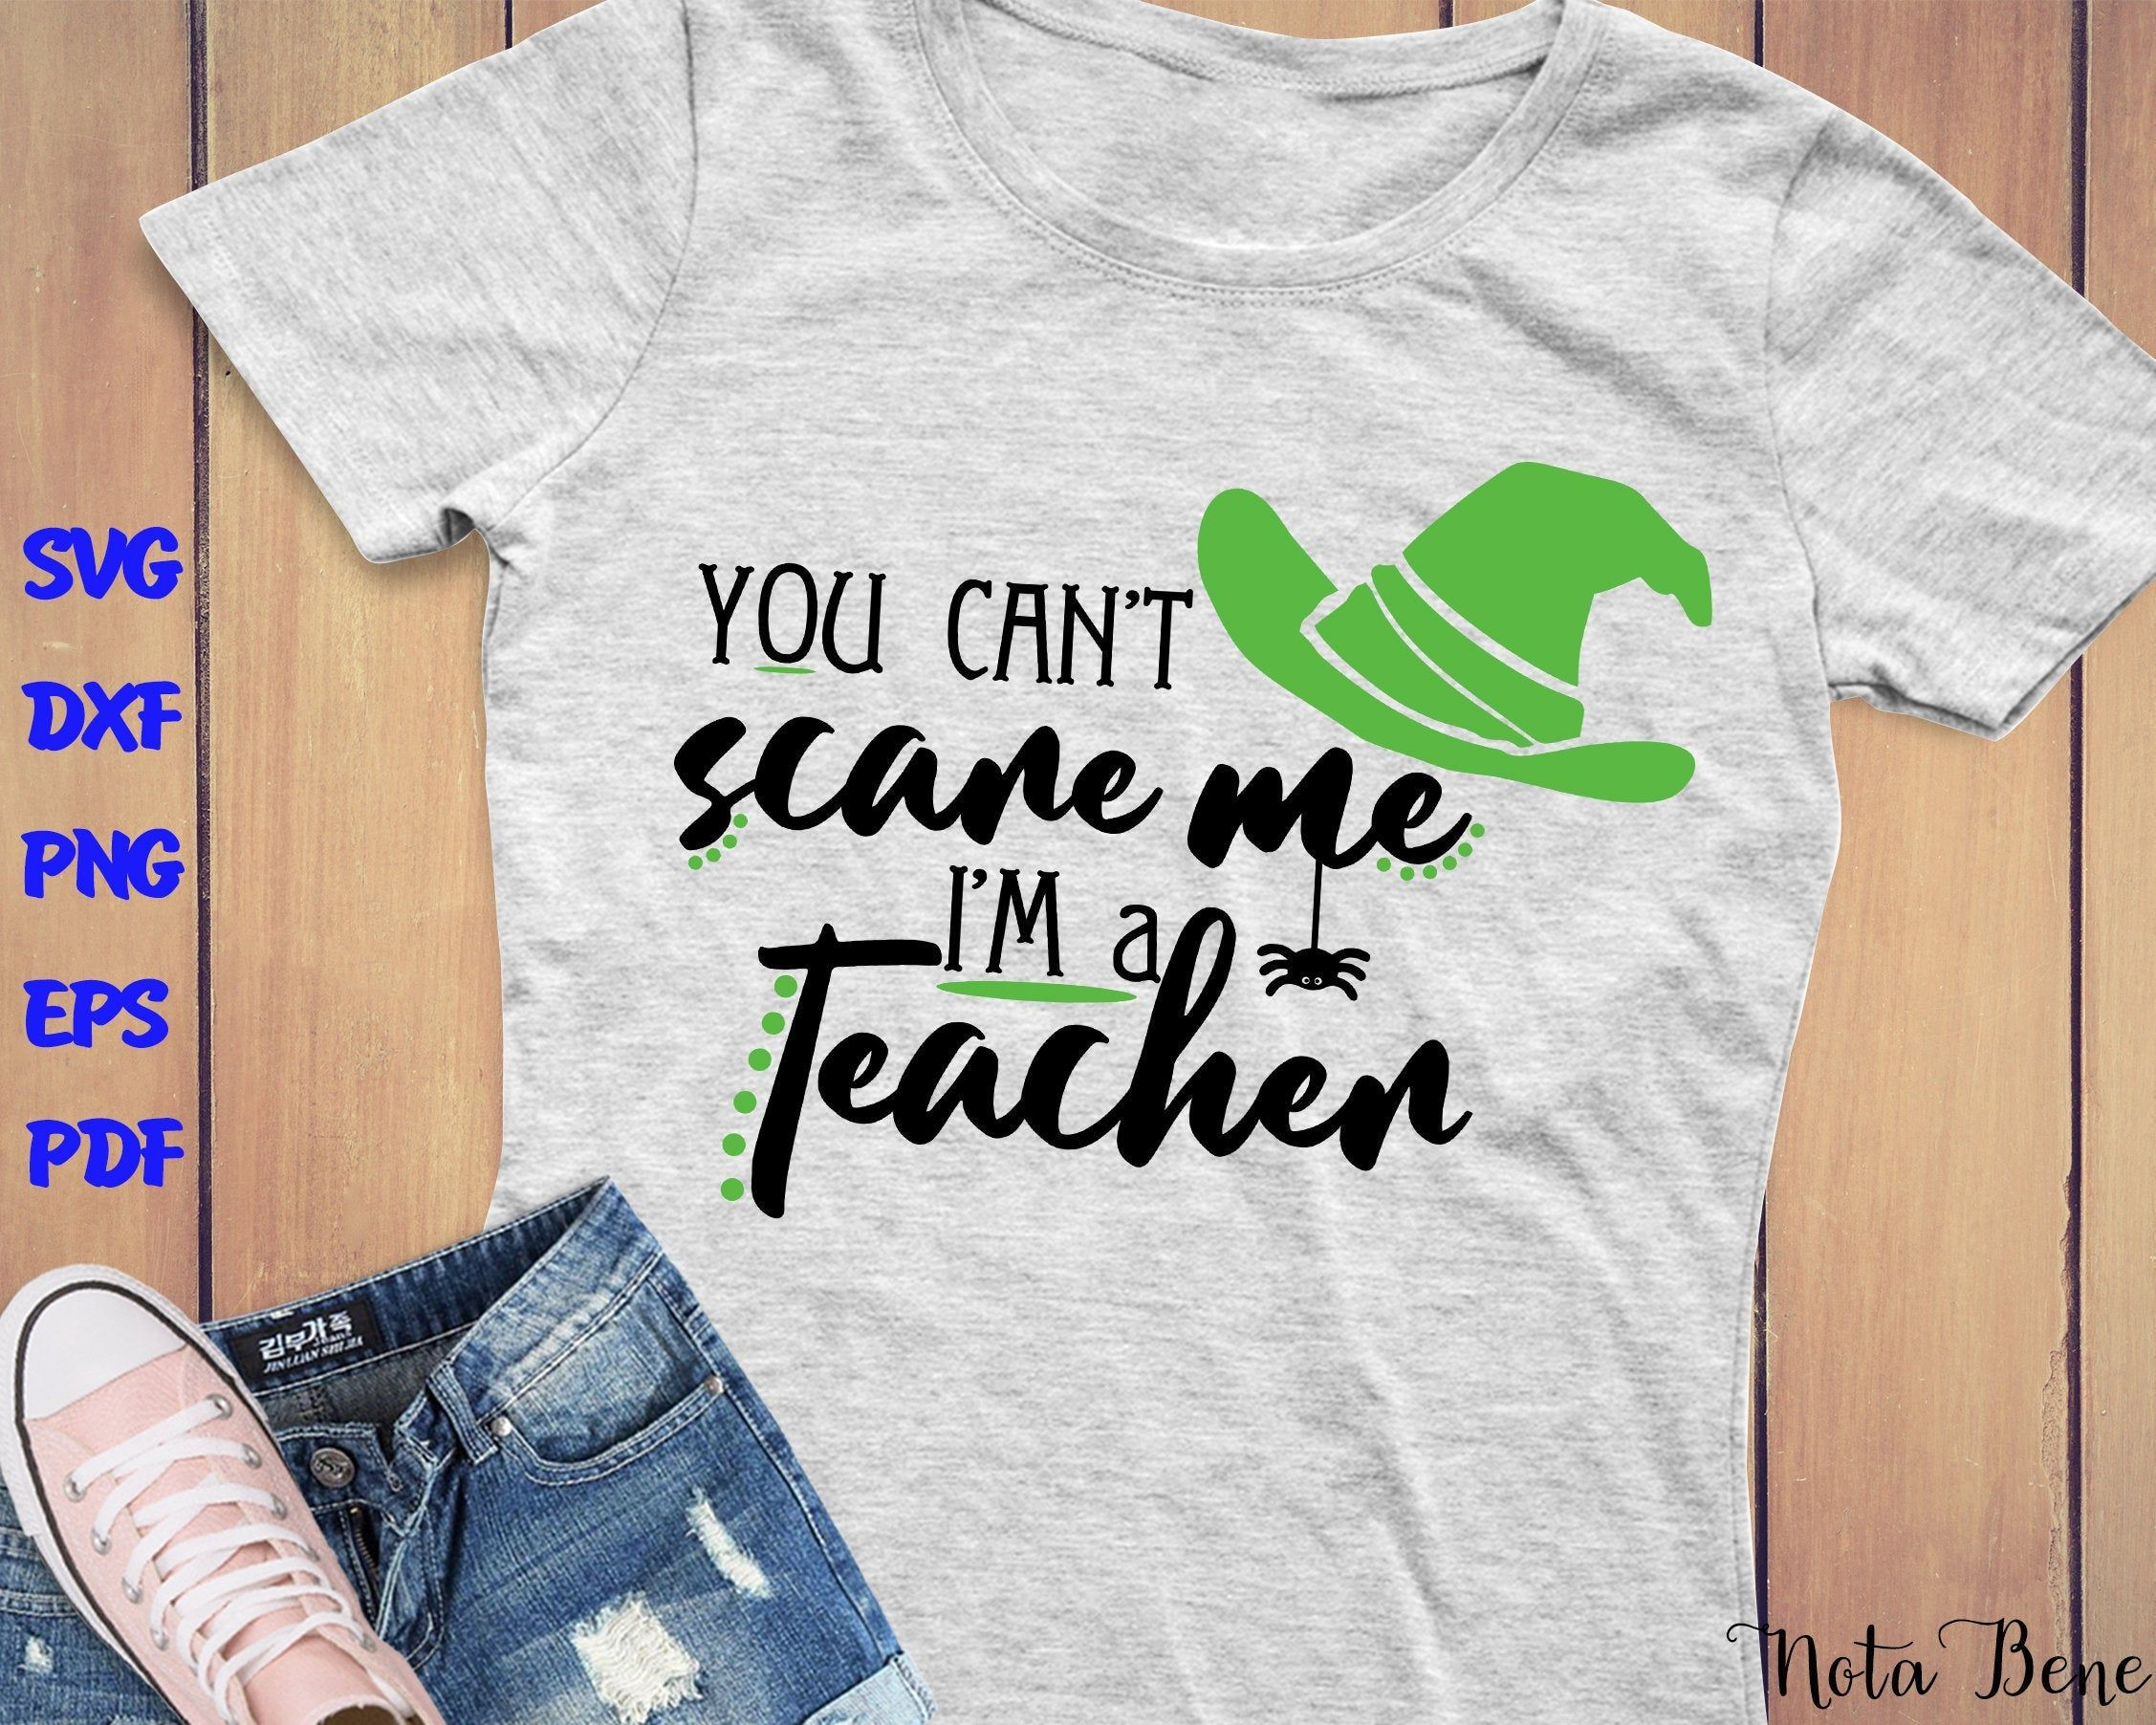 Halloween SVG for Teachers, You can't scare me, I'm a